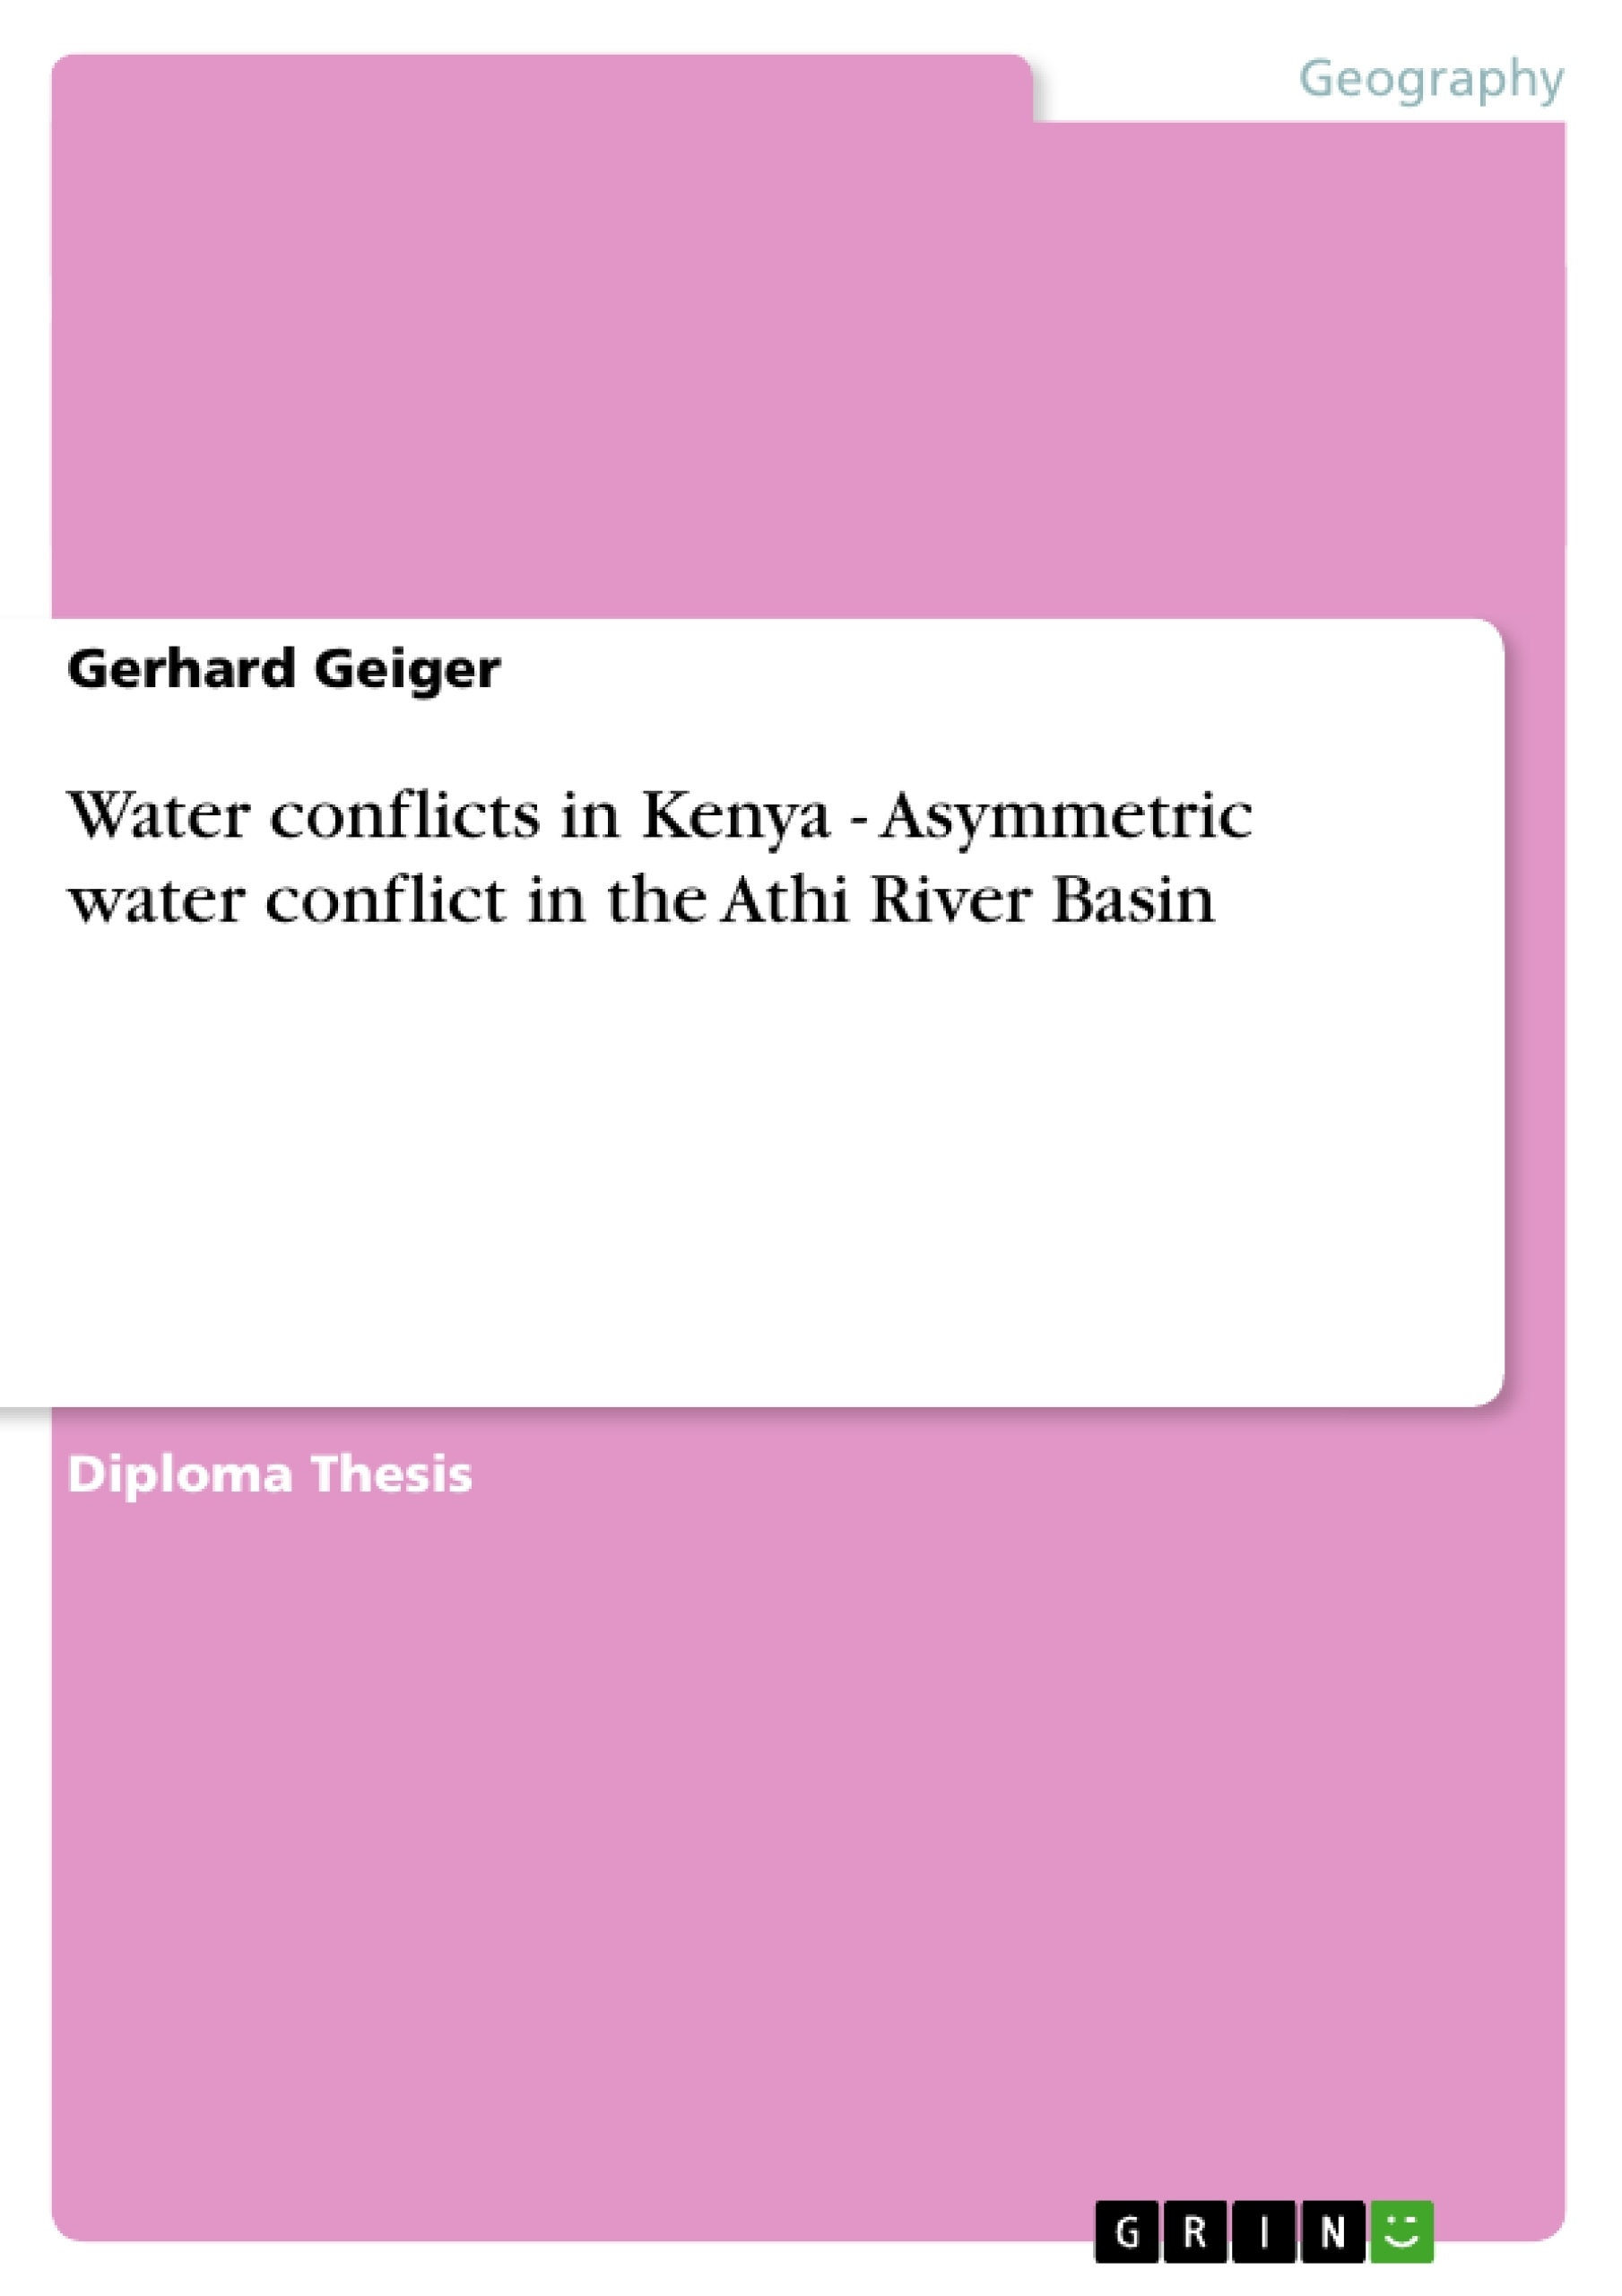 Title: Water conflicts in Kenya - Asymmetric water conflict in the Athi River Basin